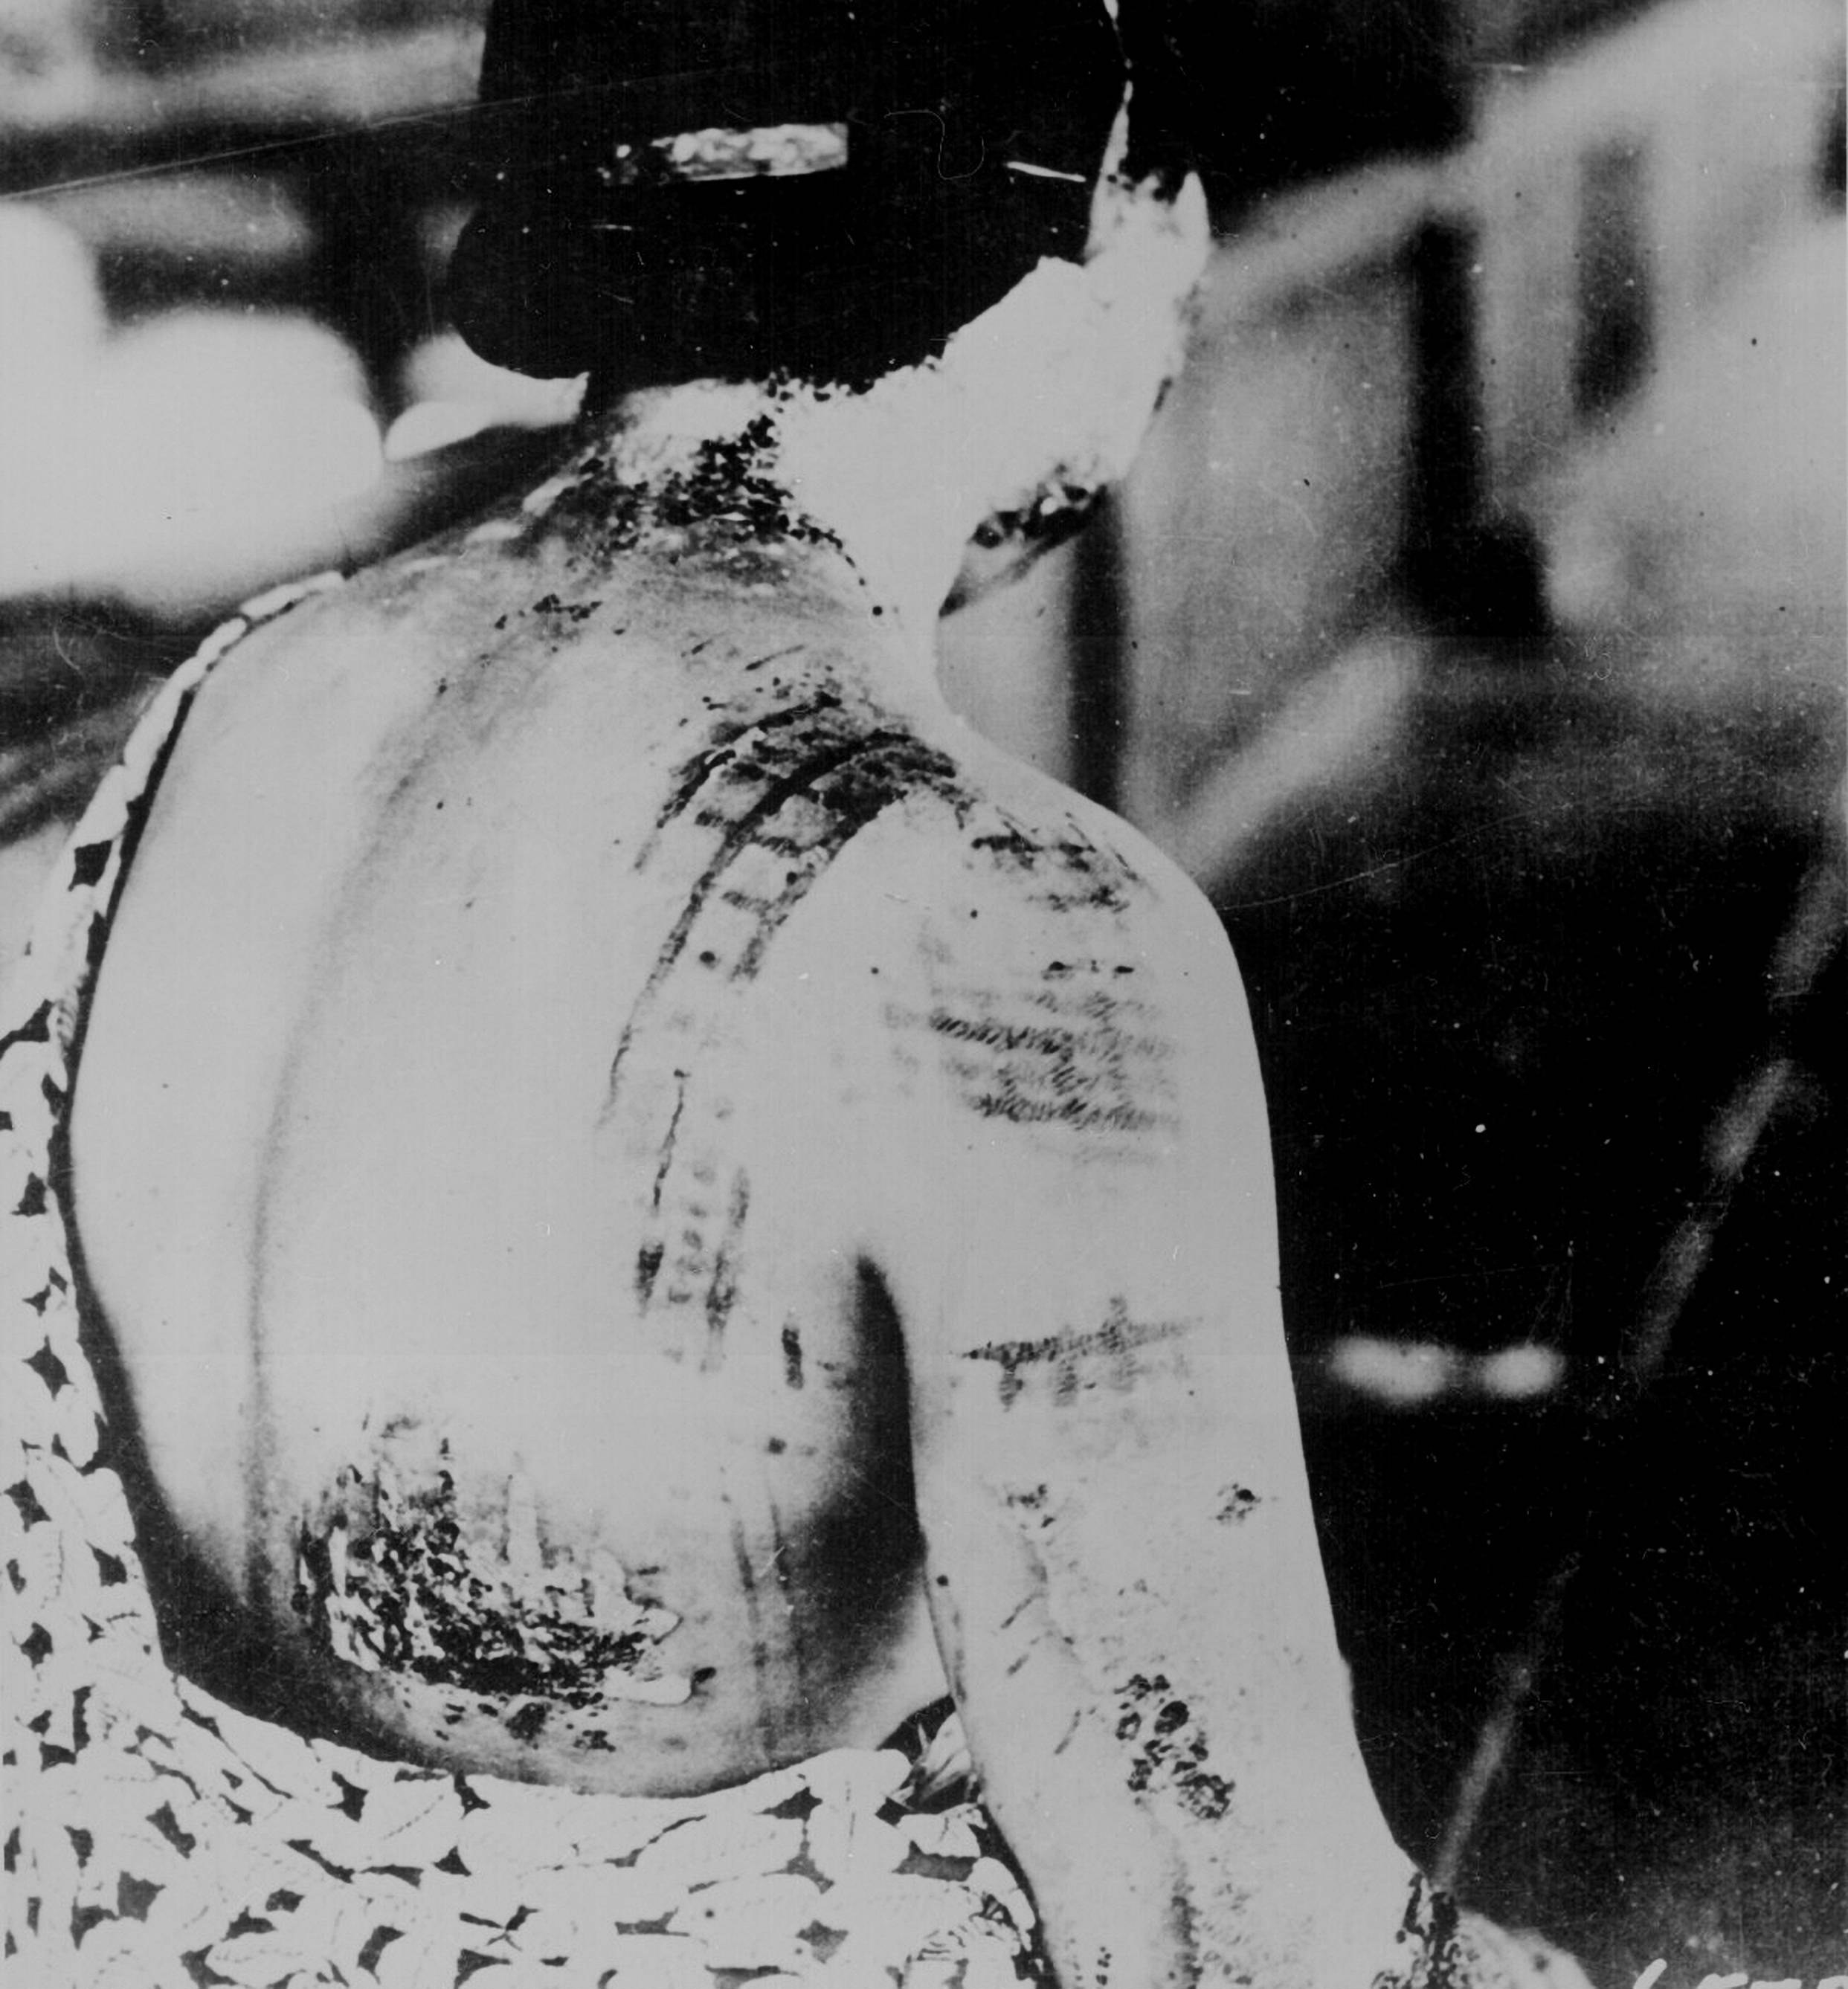 A woman reveals severe burns in gridlike patterns on her back caused by radiation